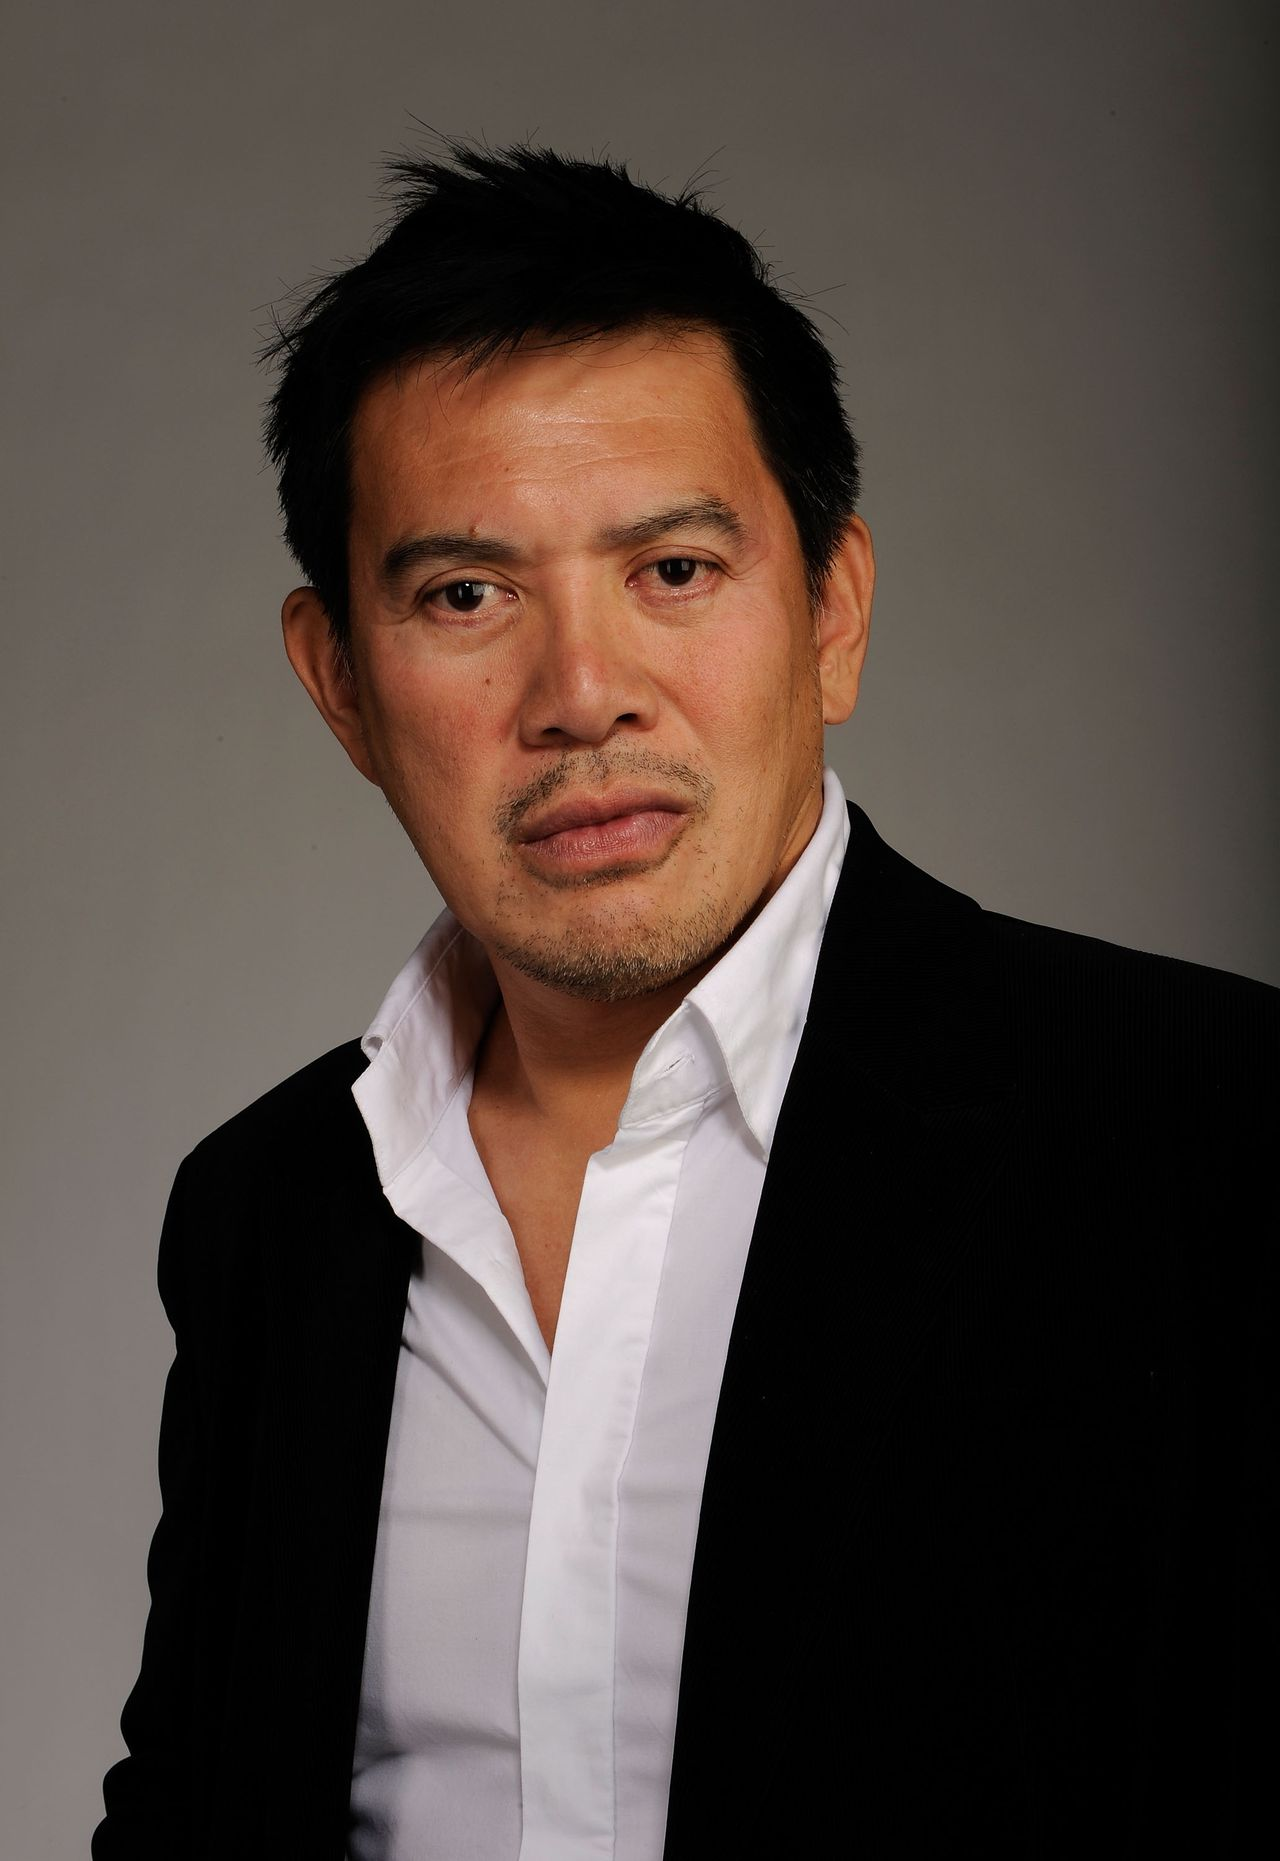 NEW YORK - APRIL 23: Director Brillante Mendoza attends the Tribeca Film Festival 2010 portrait studio at the FilmMaker Industry Press Center on April 23, 2010 in New York, New York. Larry Busacca/Getty Images for Tribeca Film Festival/AFP